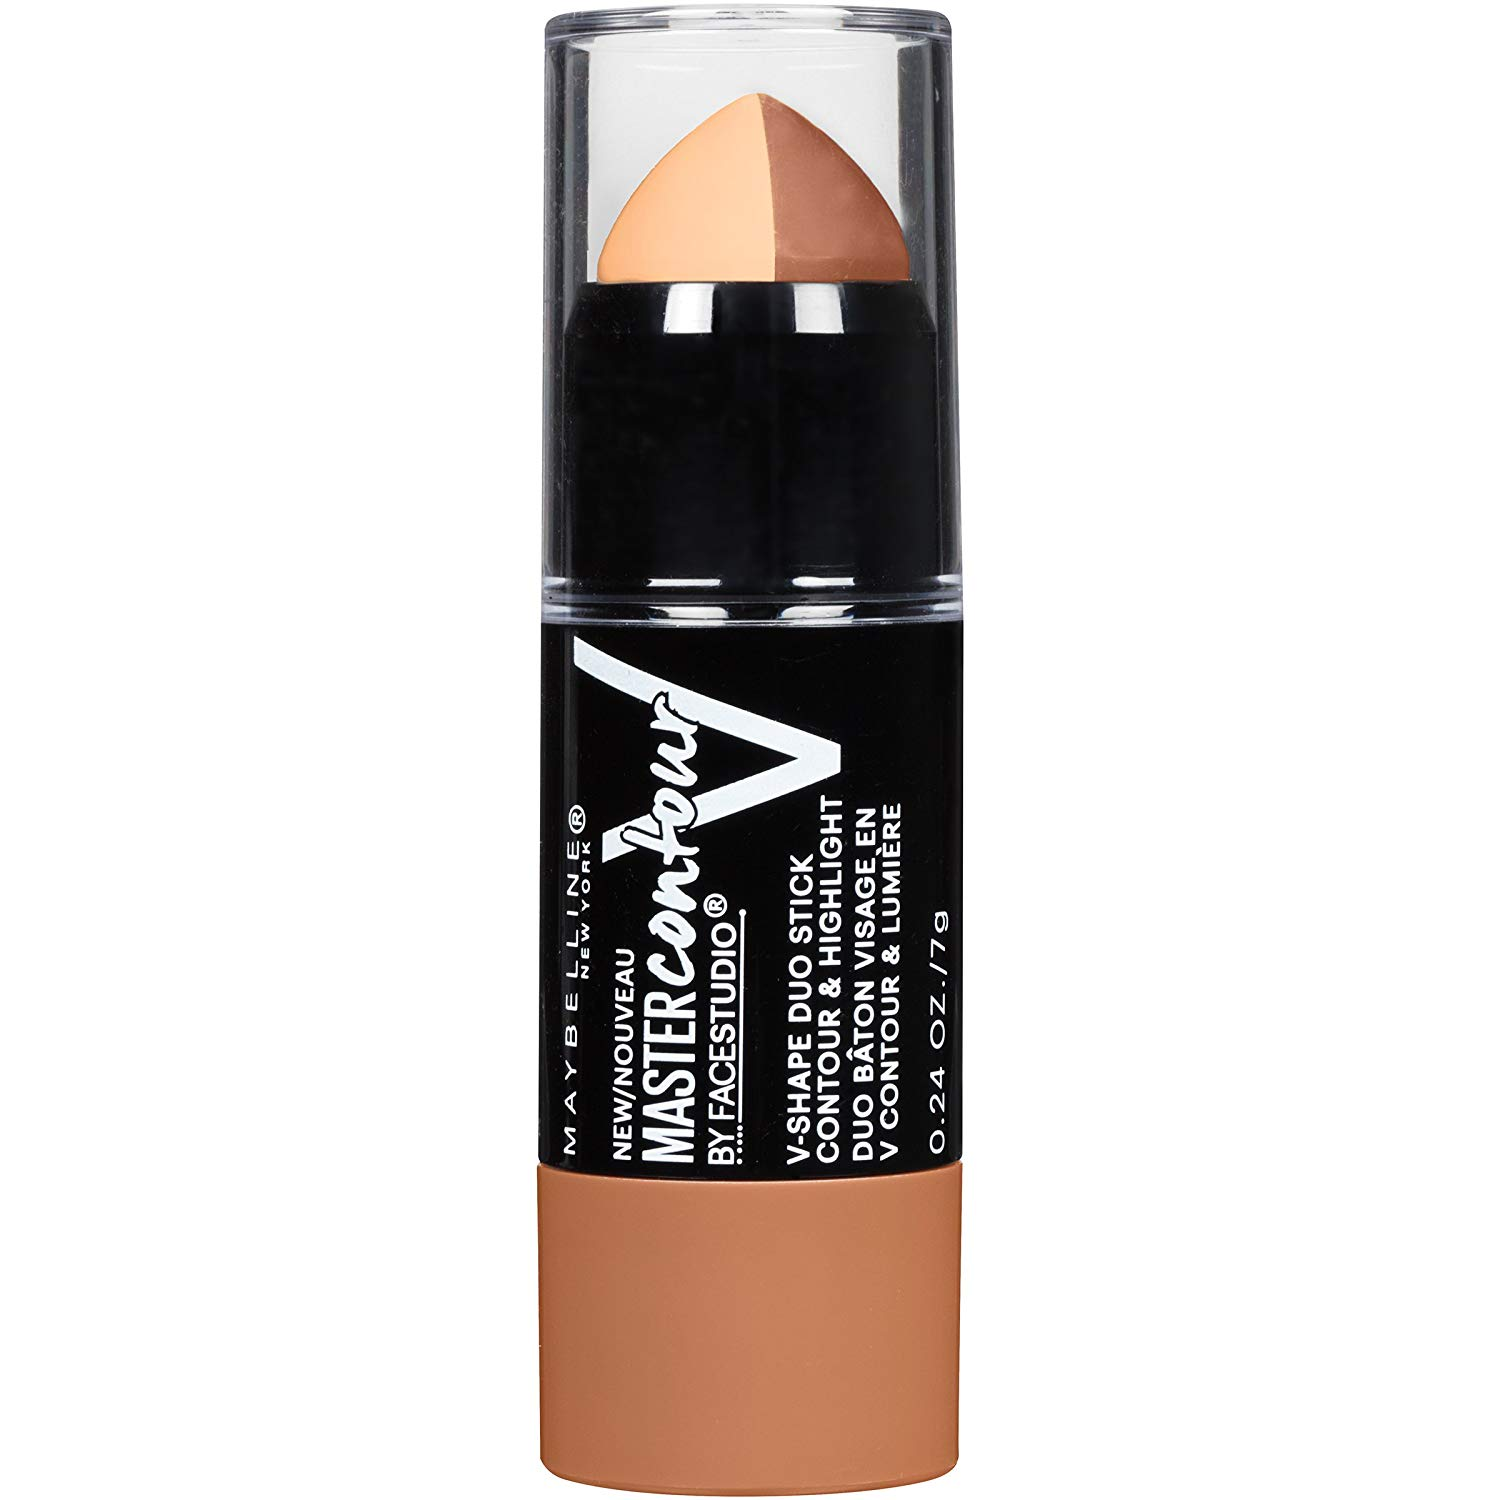 Maybelline New York Makeup Facestudio Master Contour V-Shape Duo Stick, Deep Shade Contour Stick, 0.24 oz